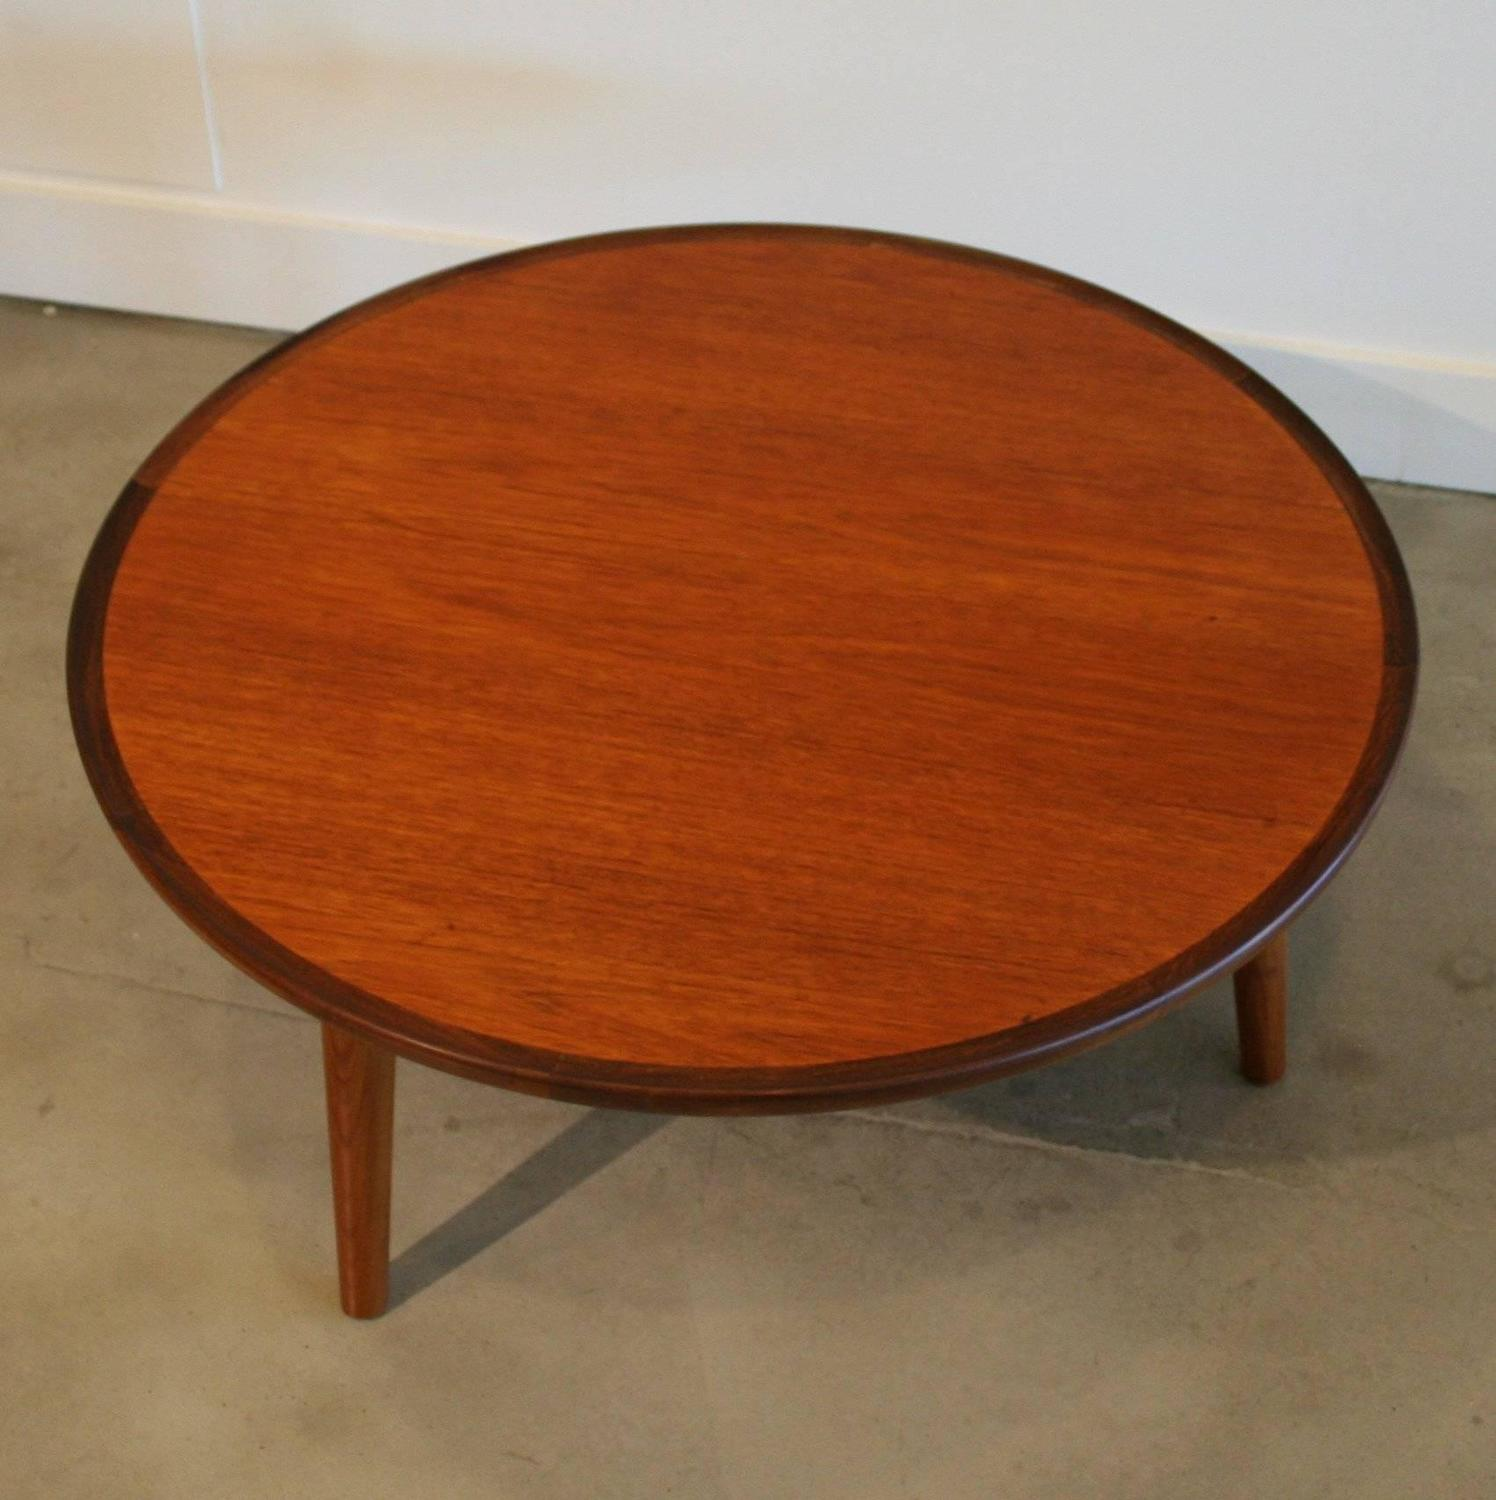 Vintage danish teak round coffee table by peter hvidt at for Coffee tables vancouver canada